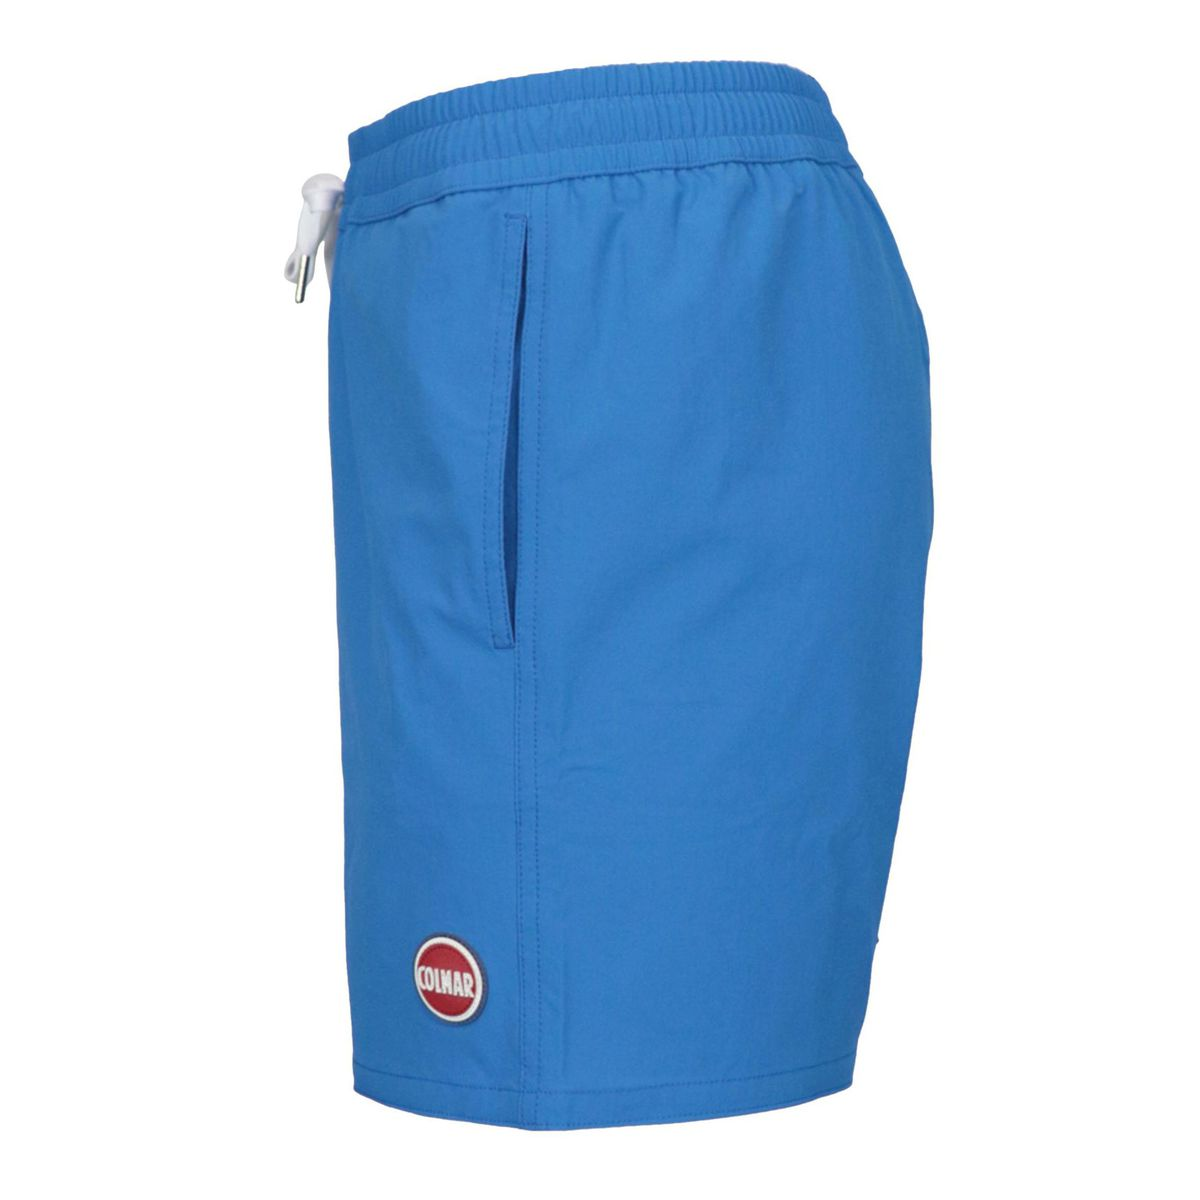 Costume shorts in stretch nylon with drawstring Royal Colmar